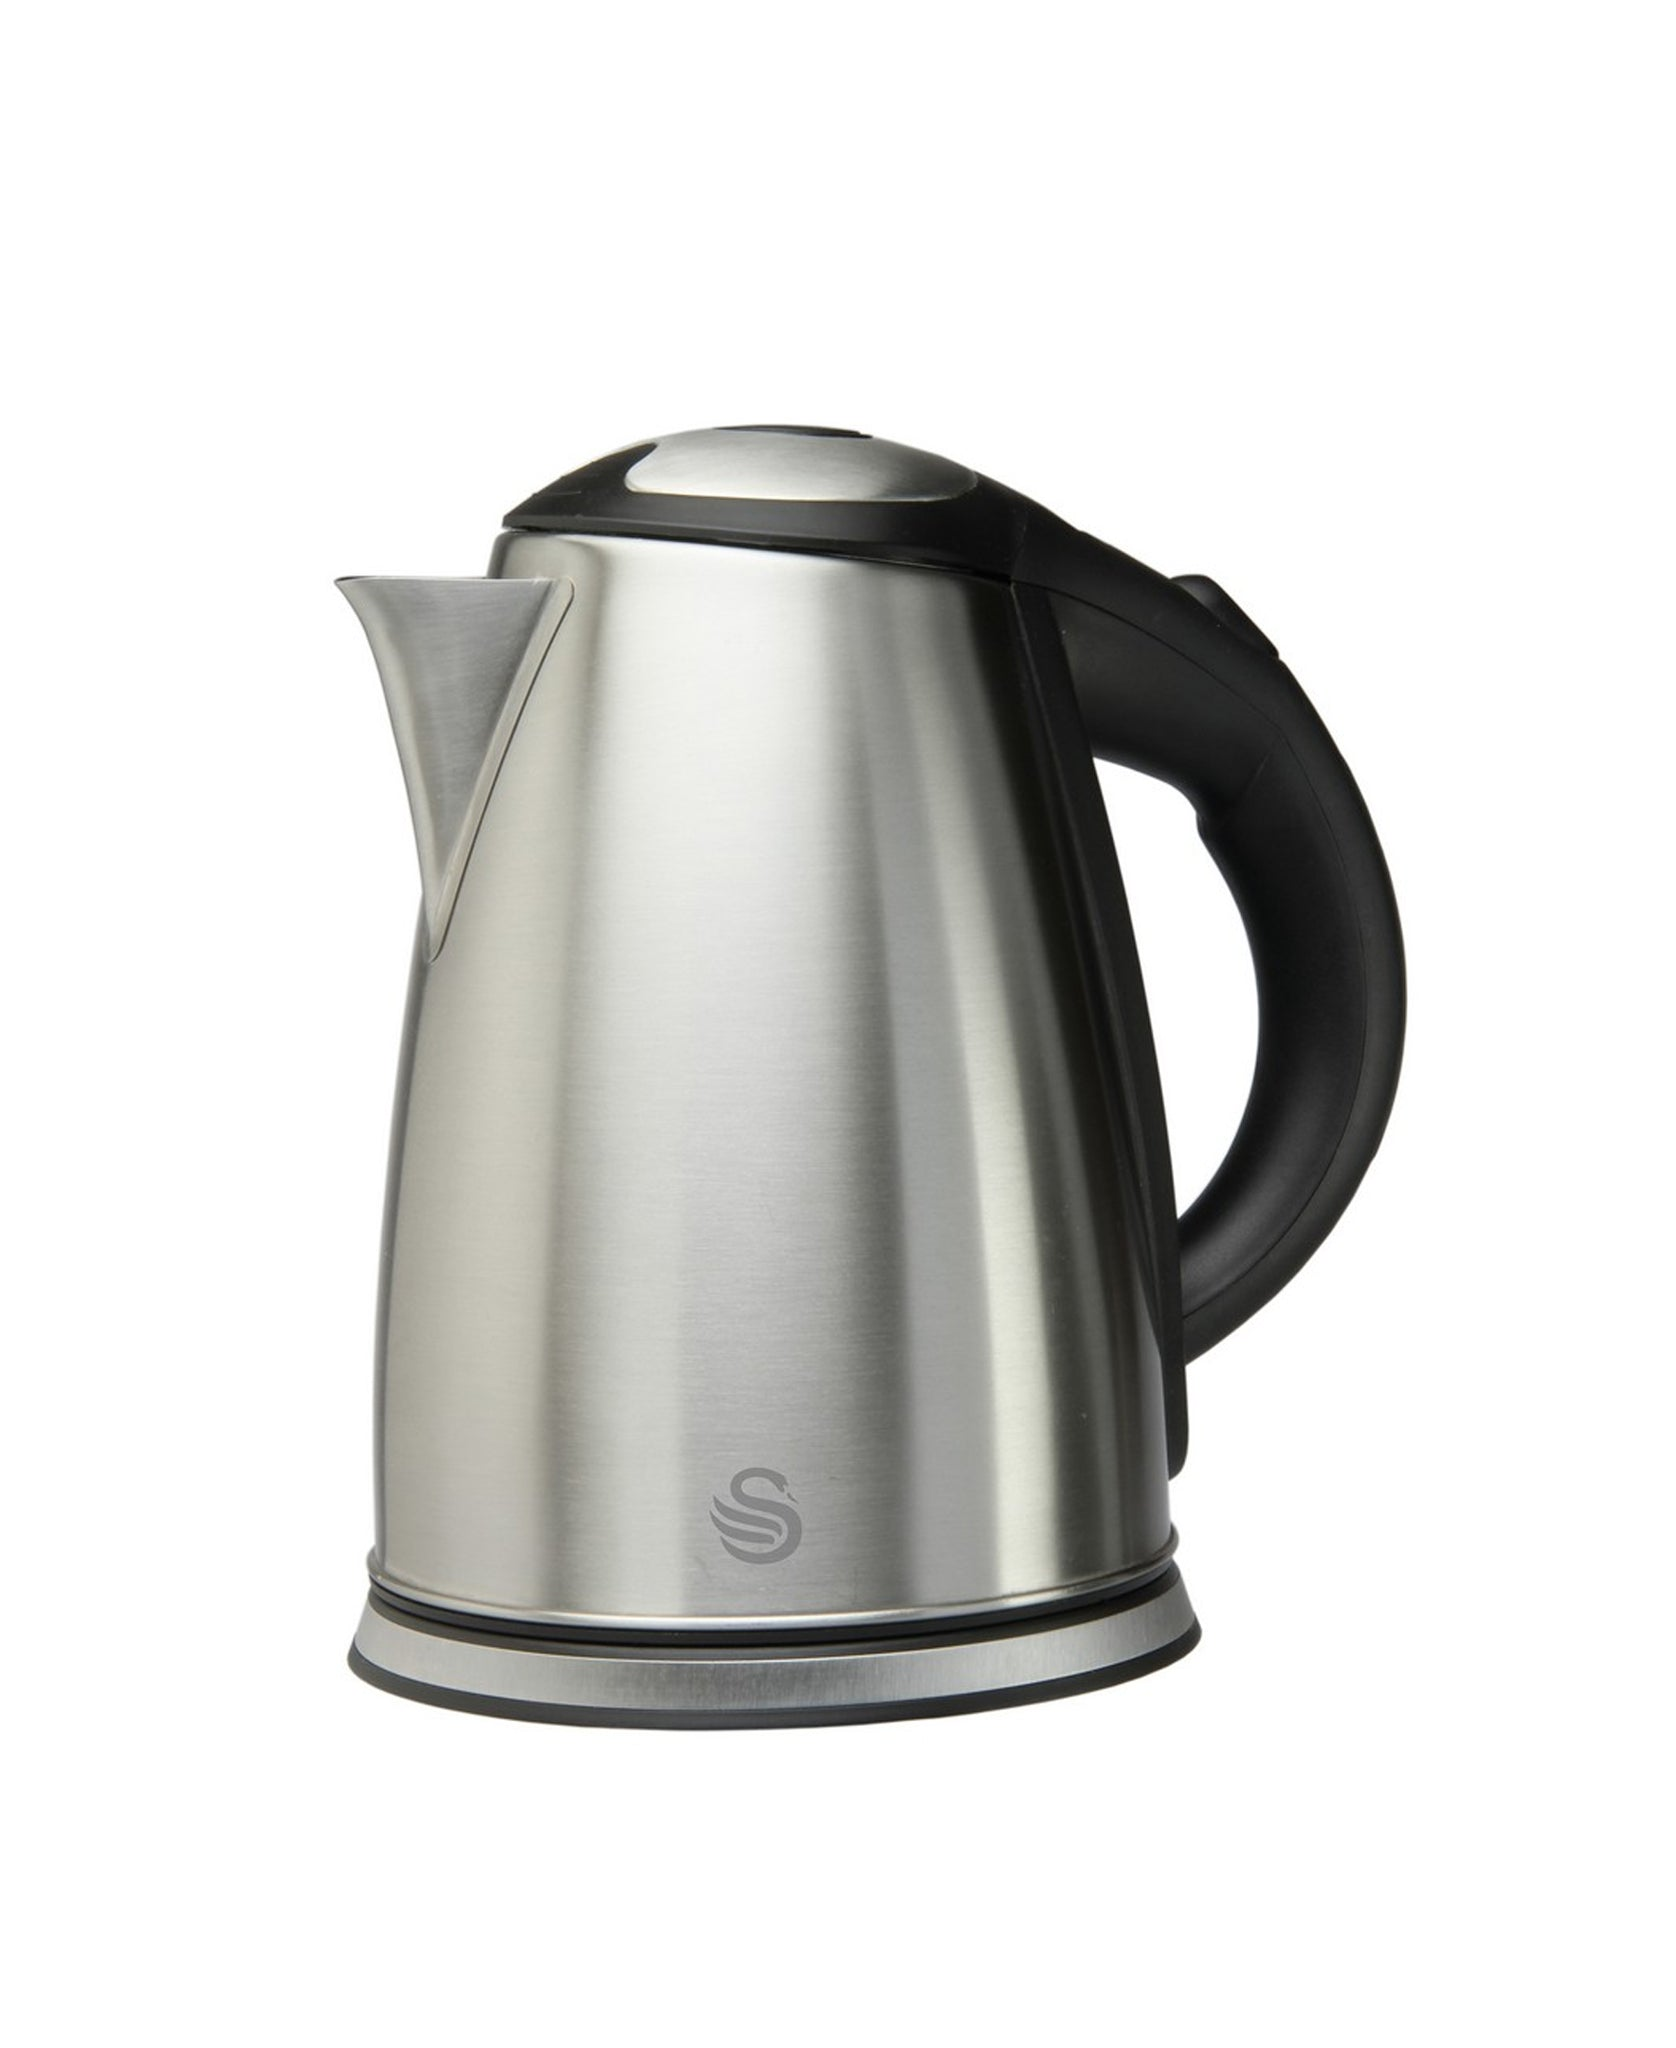 Swan Stainless Steel Kettle 1,8L